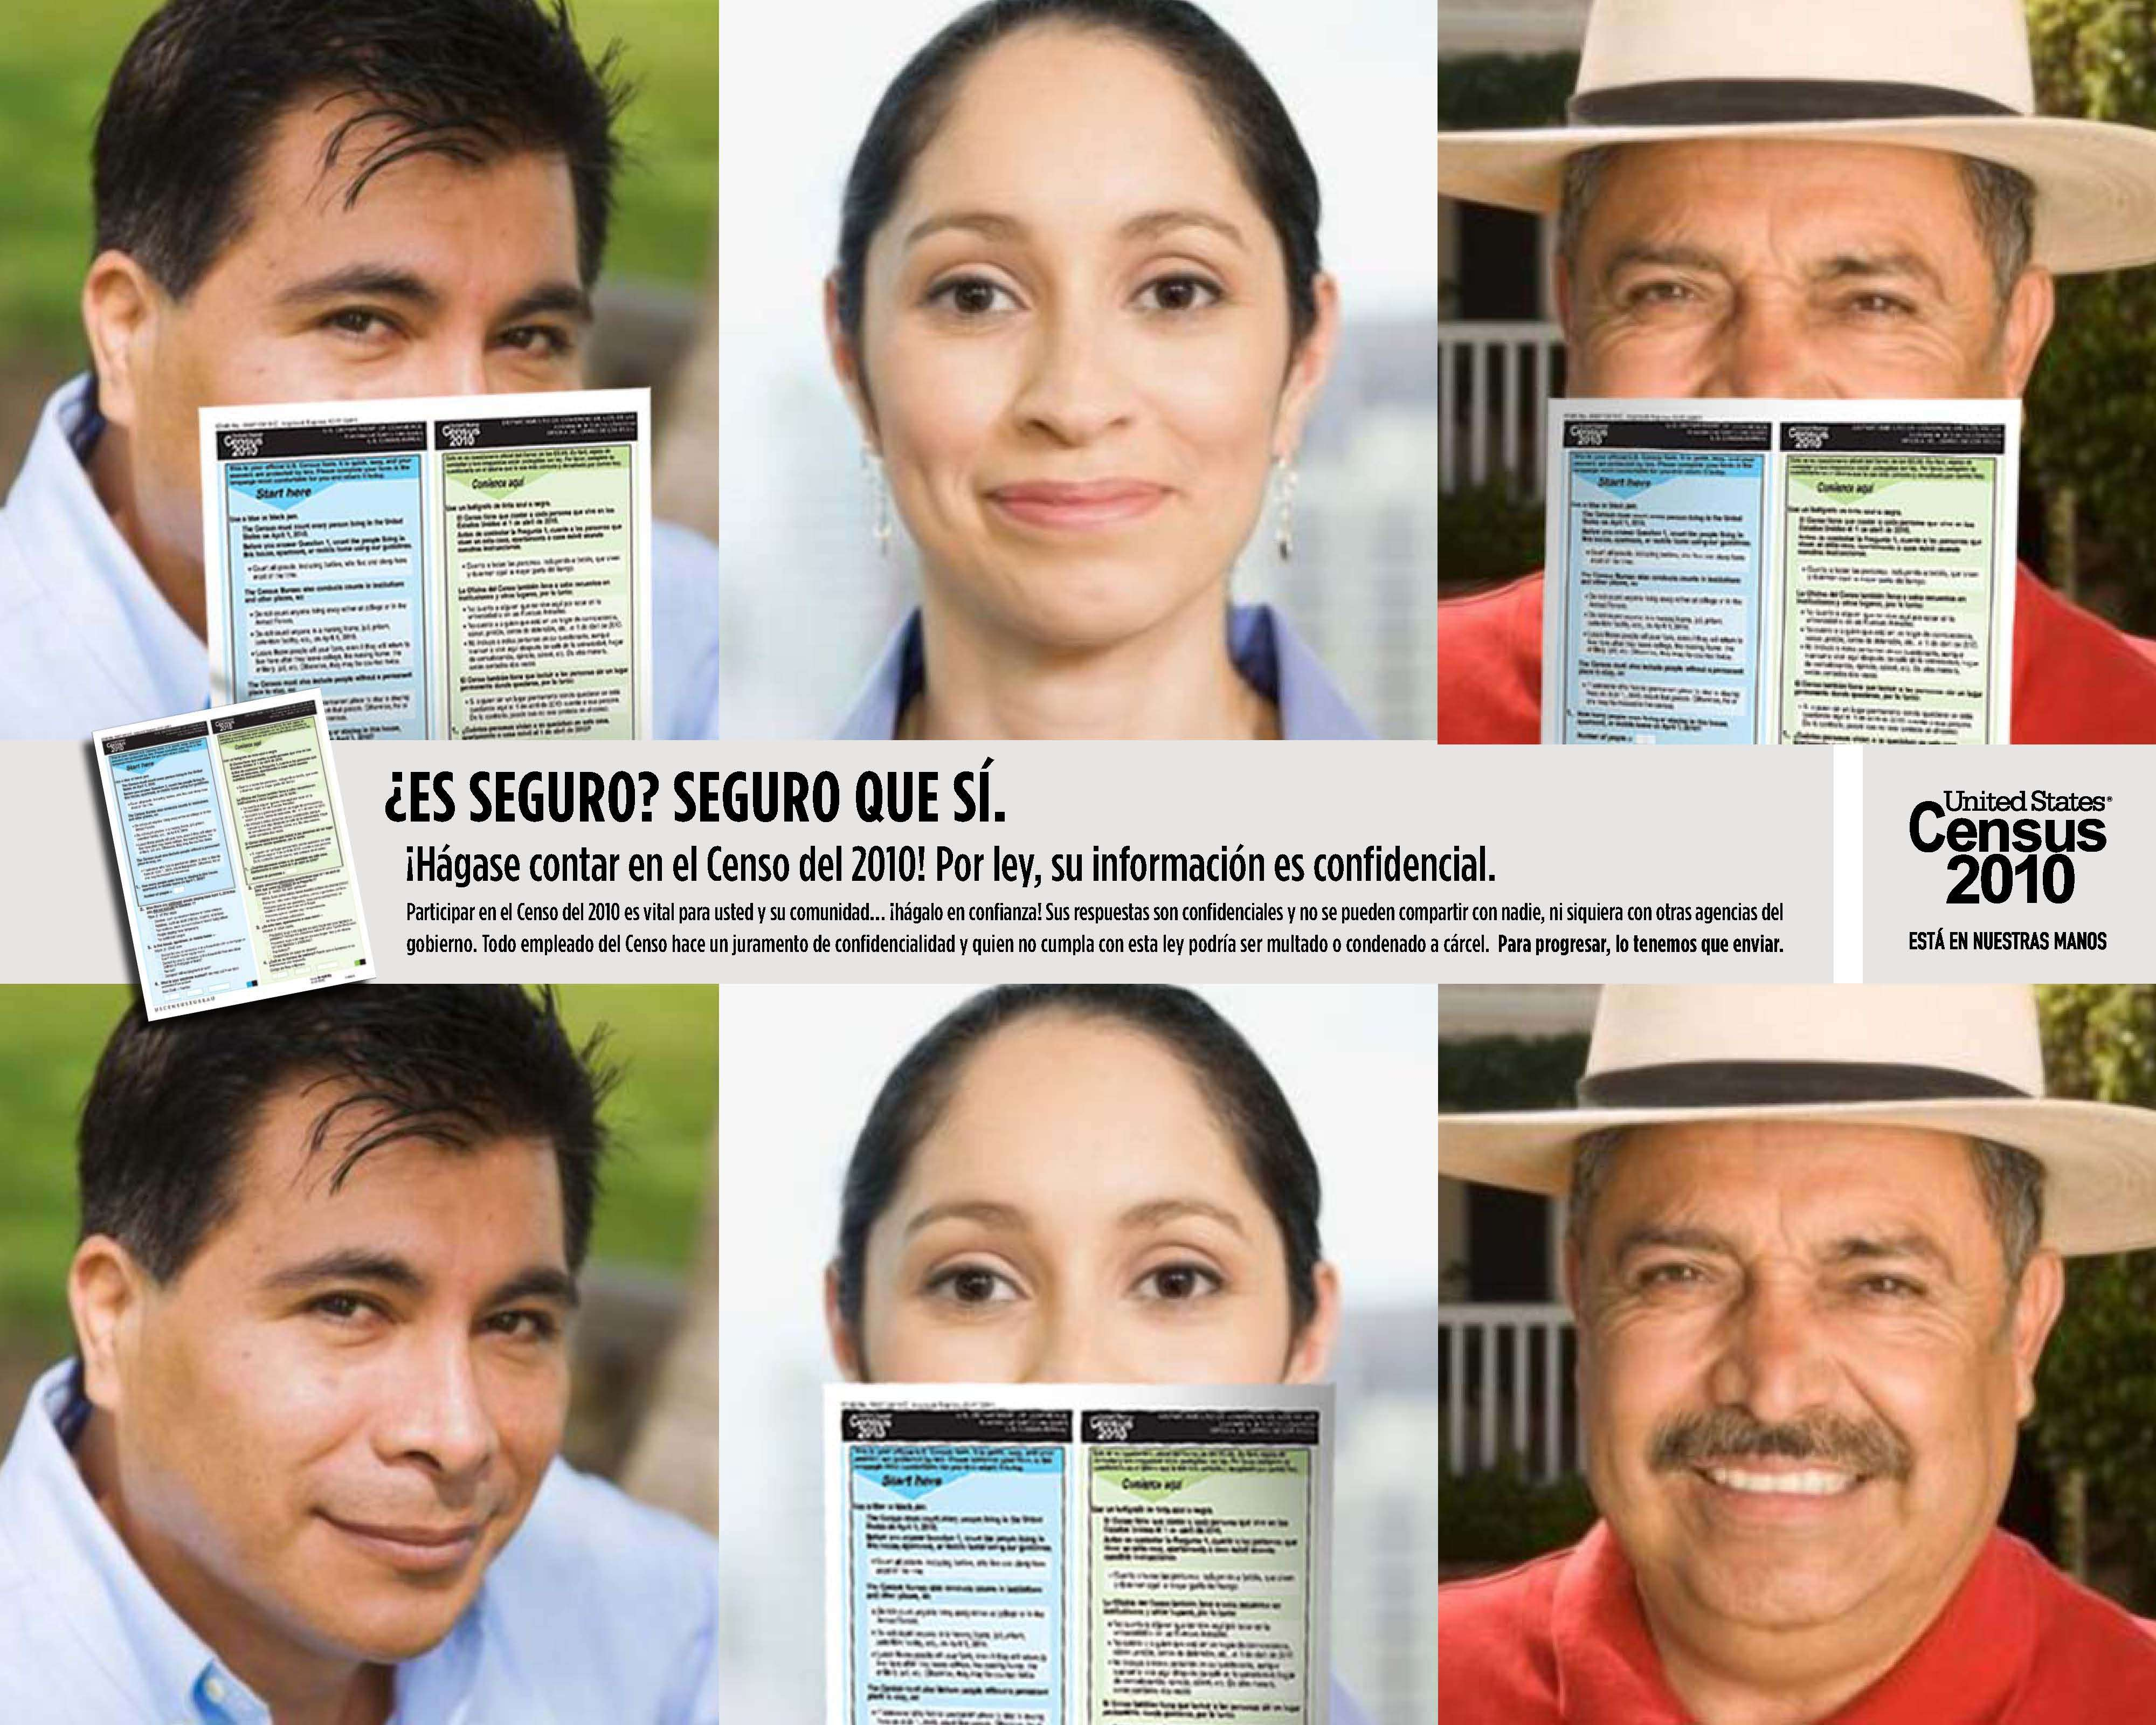 Hispanic Census Confidentiality Poster